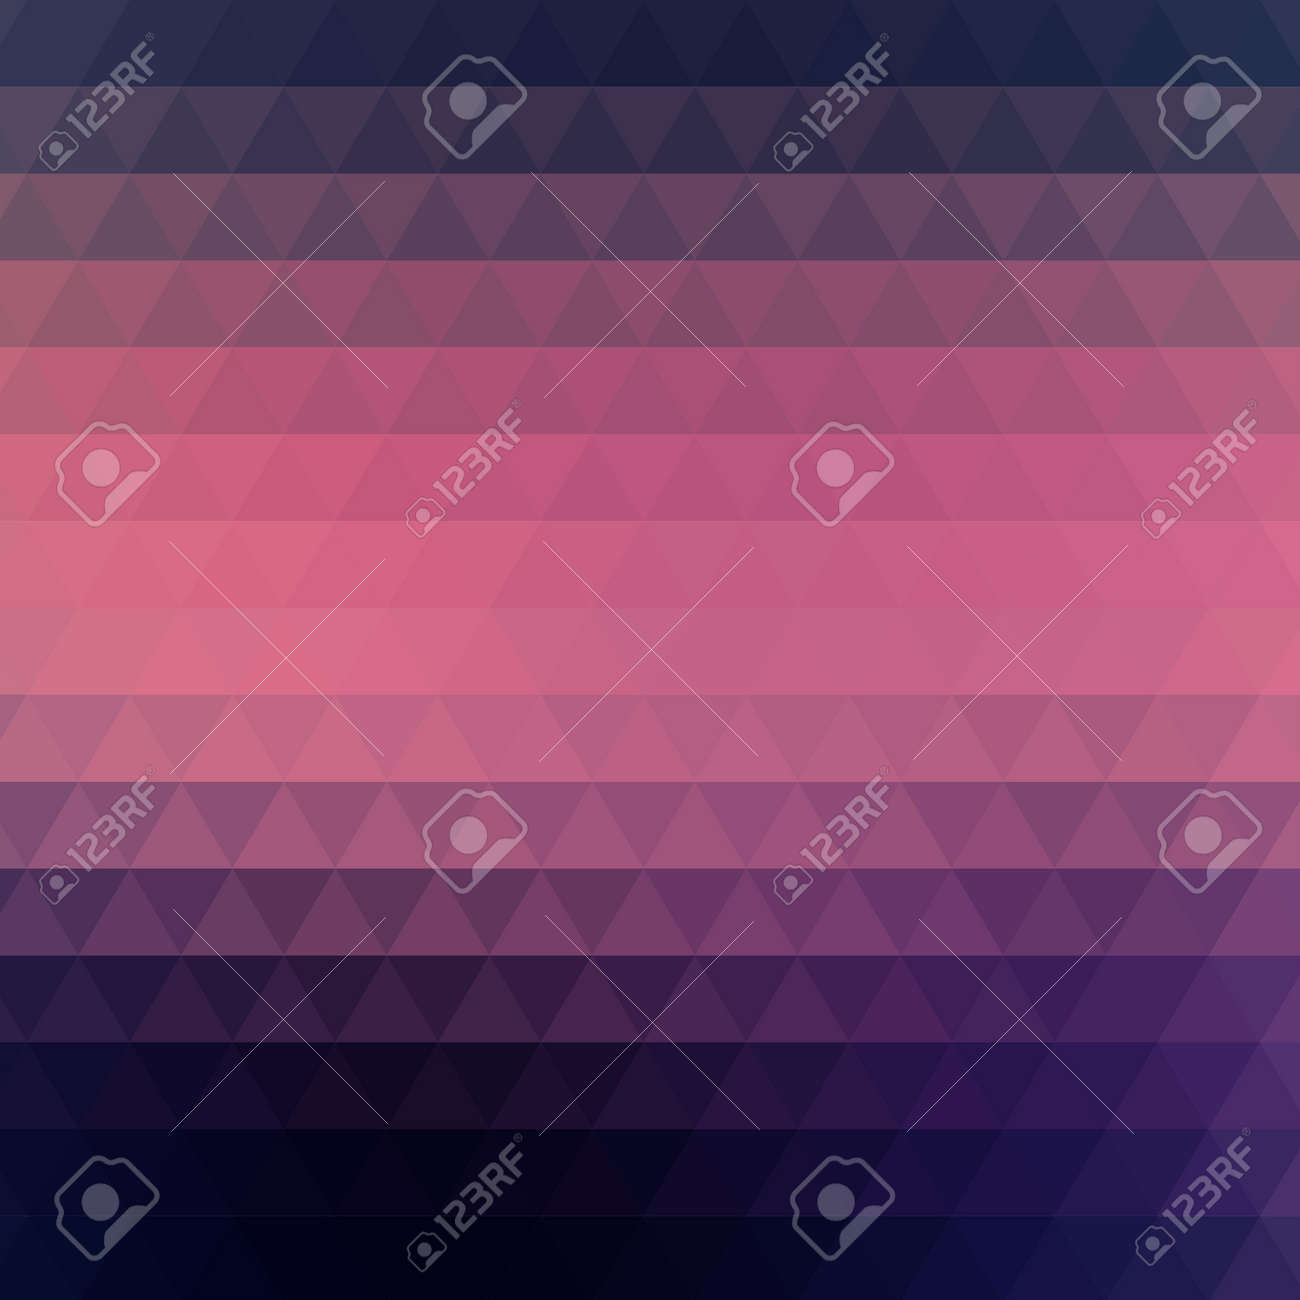 Vector abstract geometric background formed with triangles in rows, square format. Dark blue and pink wallpaper. - 169882797